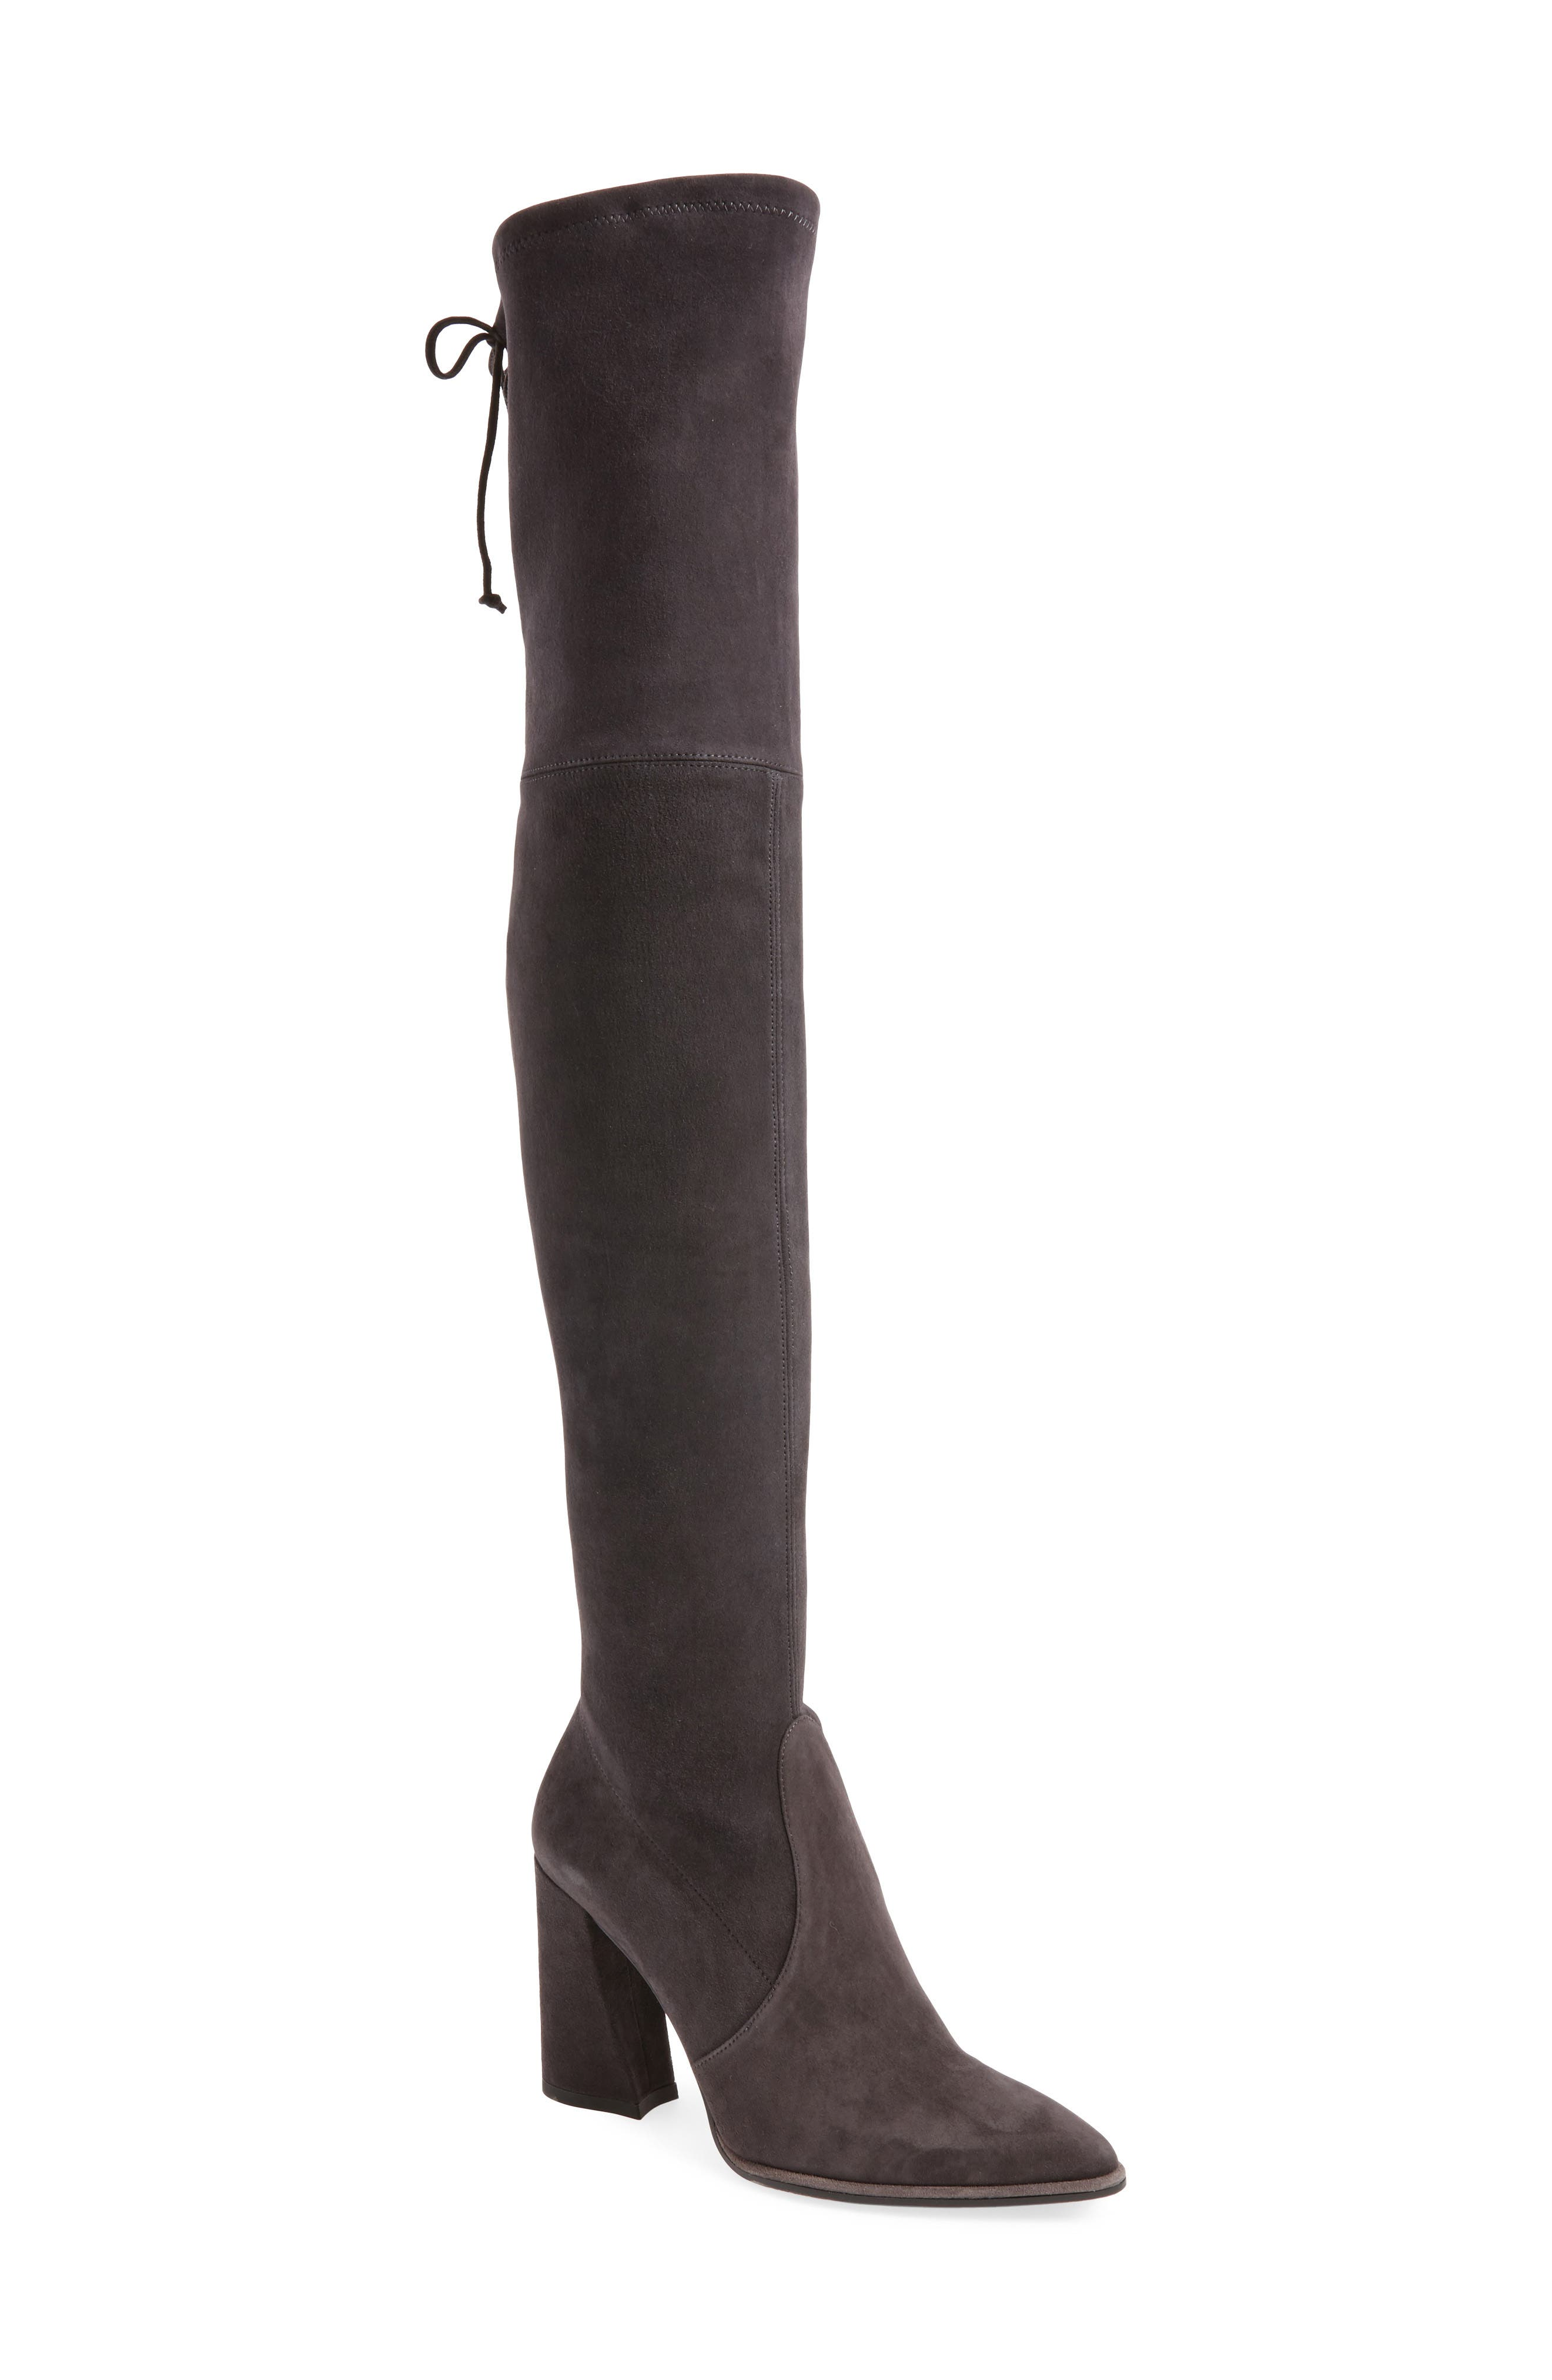 Funland Over the Knee Boot,                         Main,                         color,